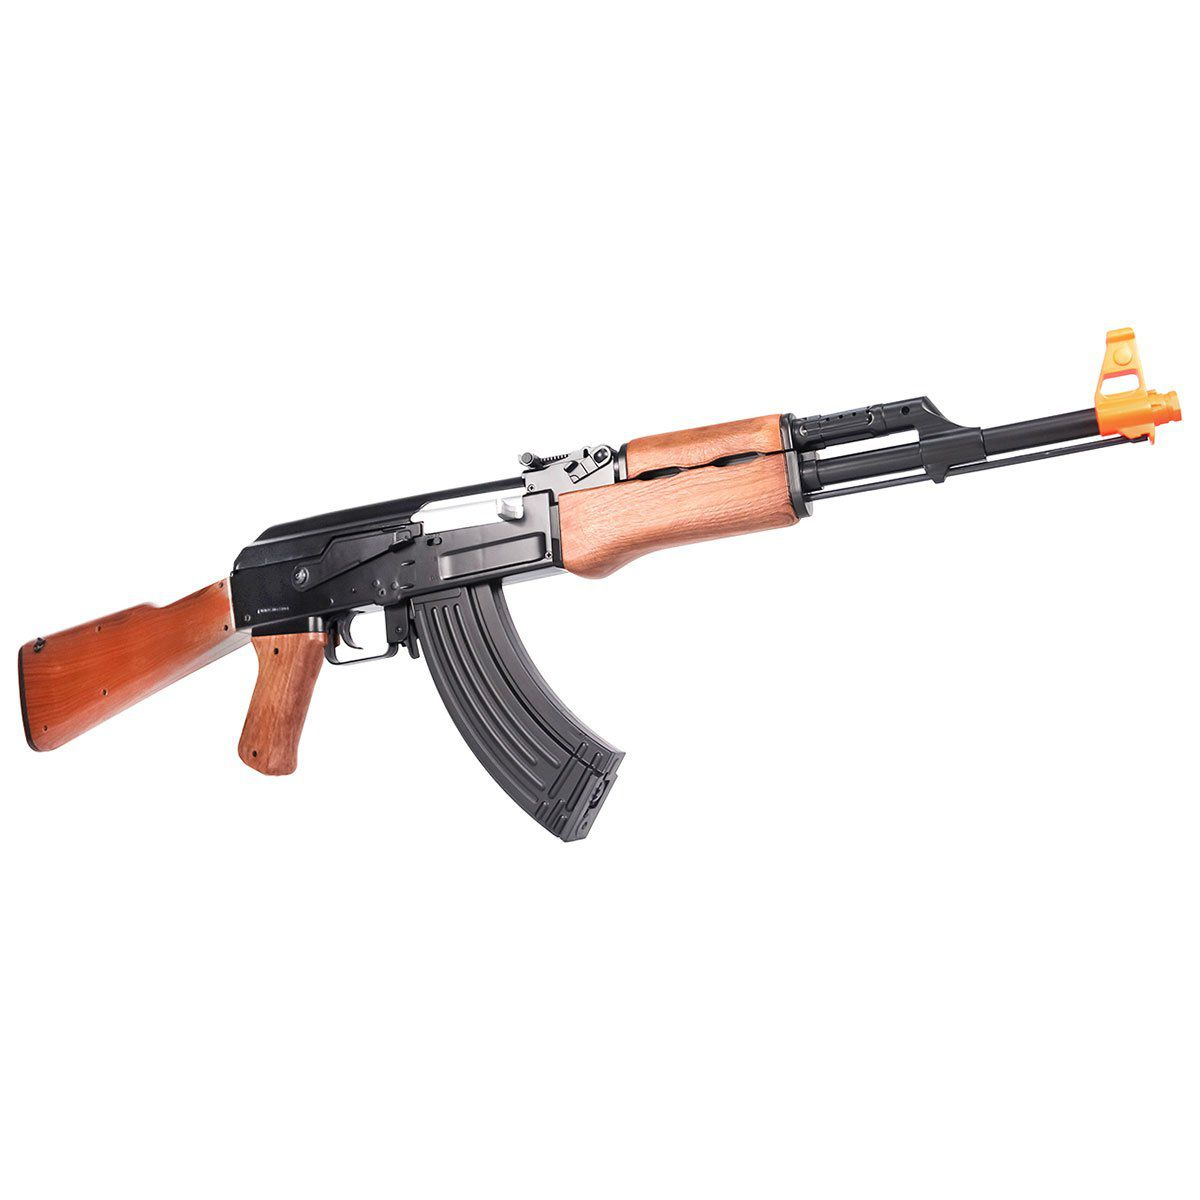 Rifle de Airsoft Cyma AK47 Toy CM022 Kalashnikov 6mm